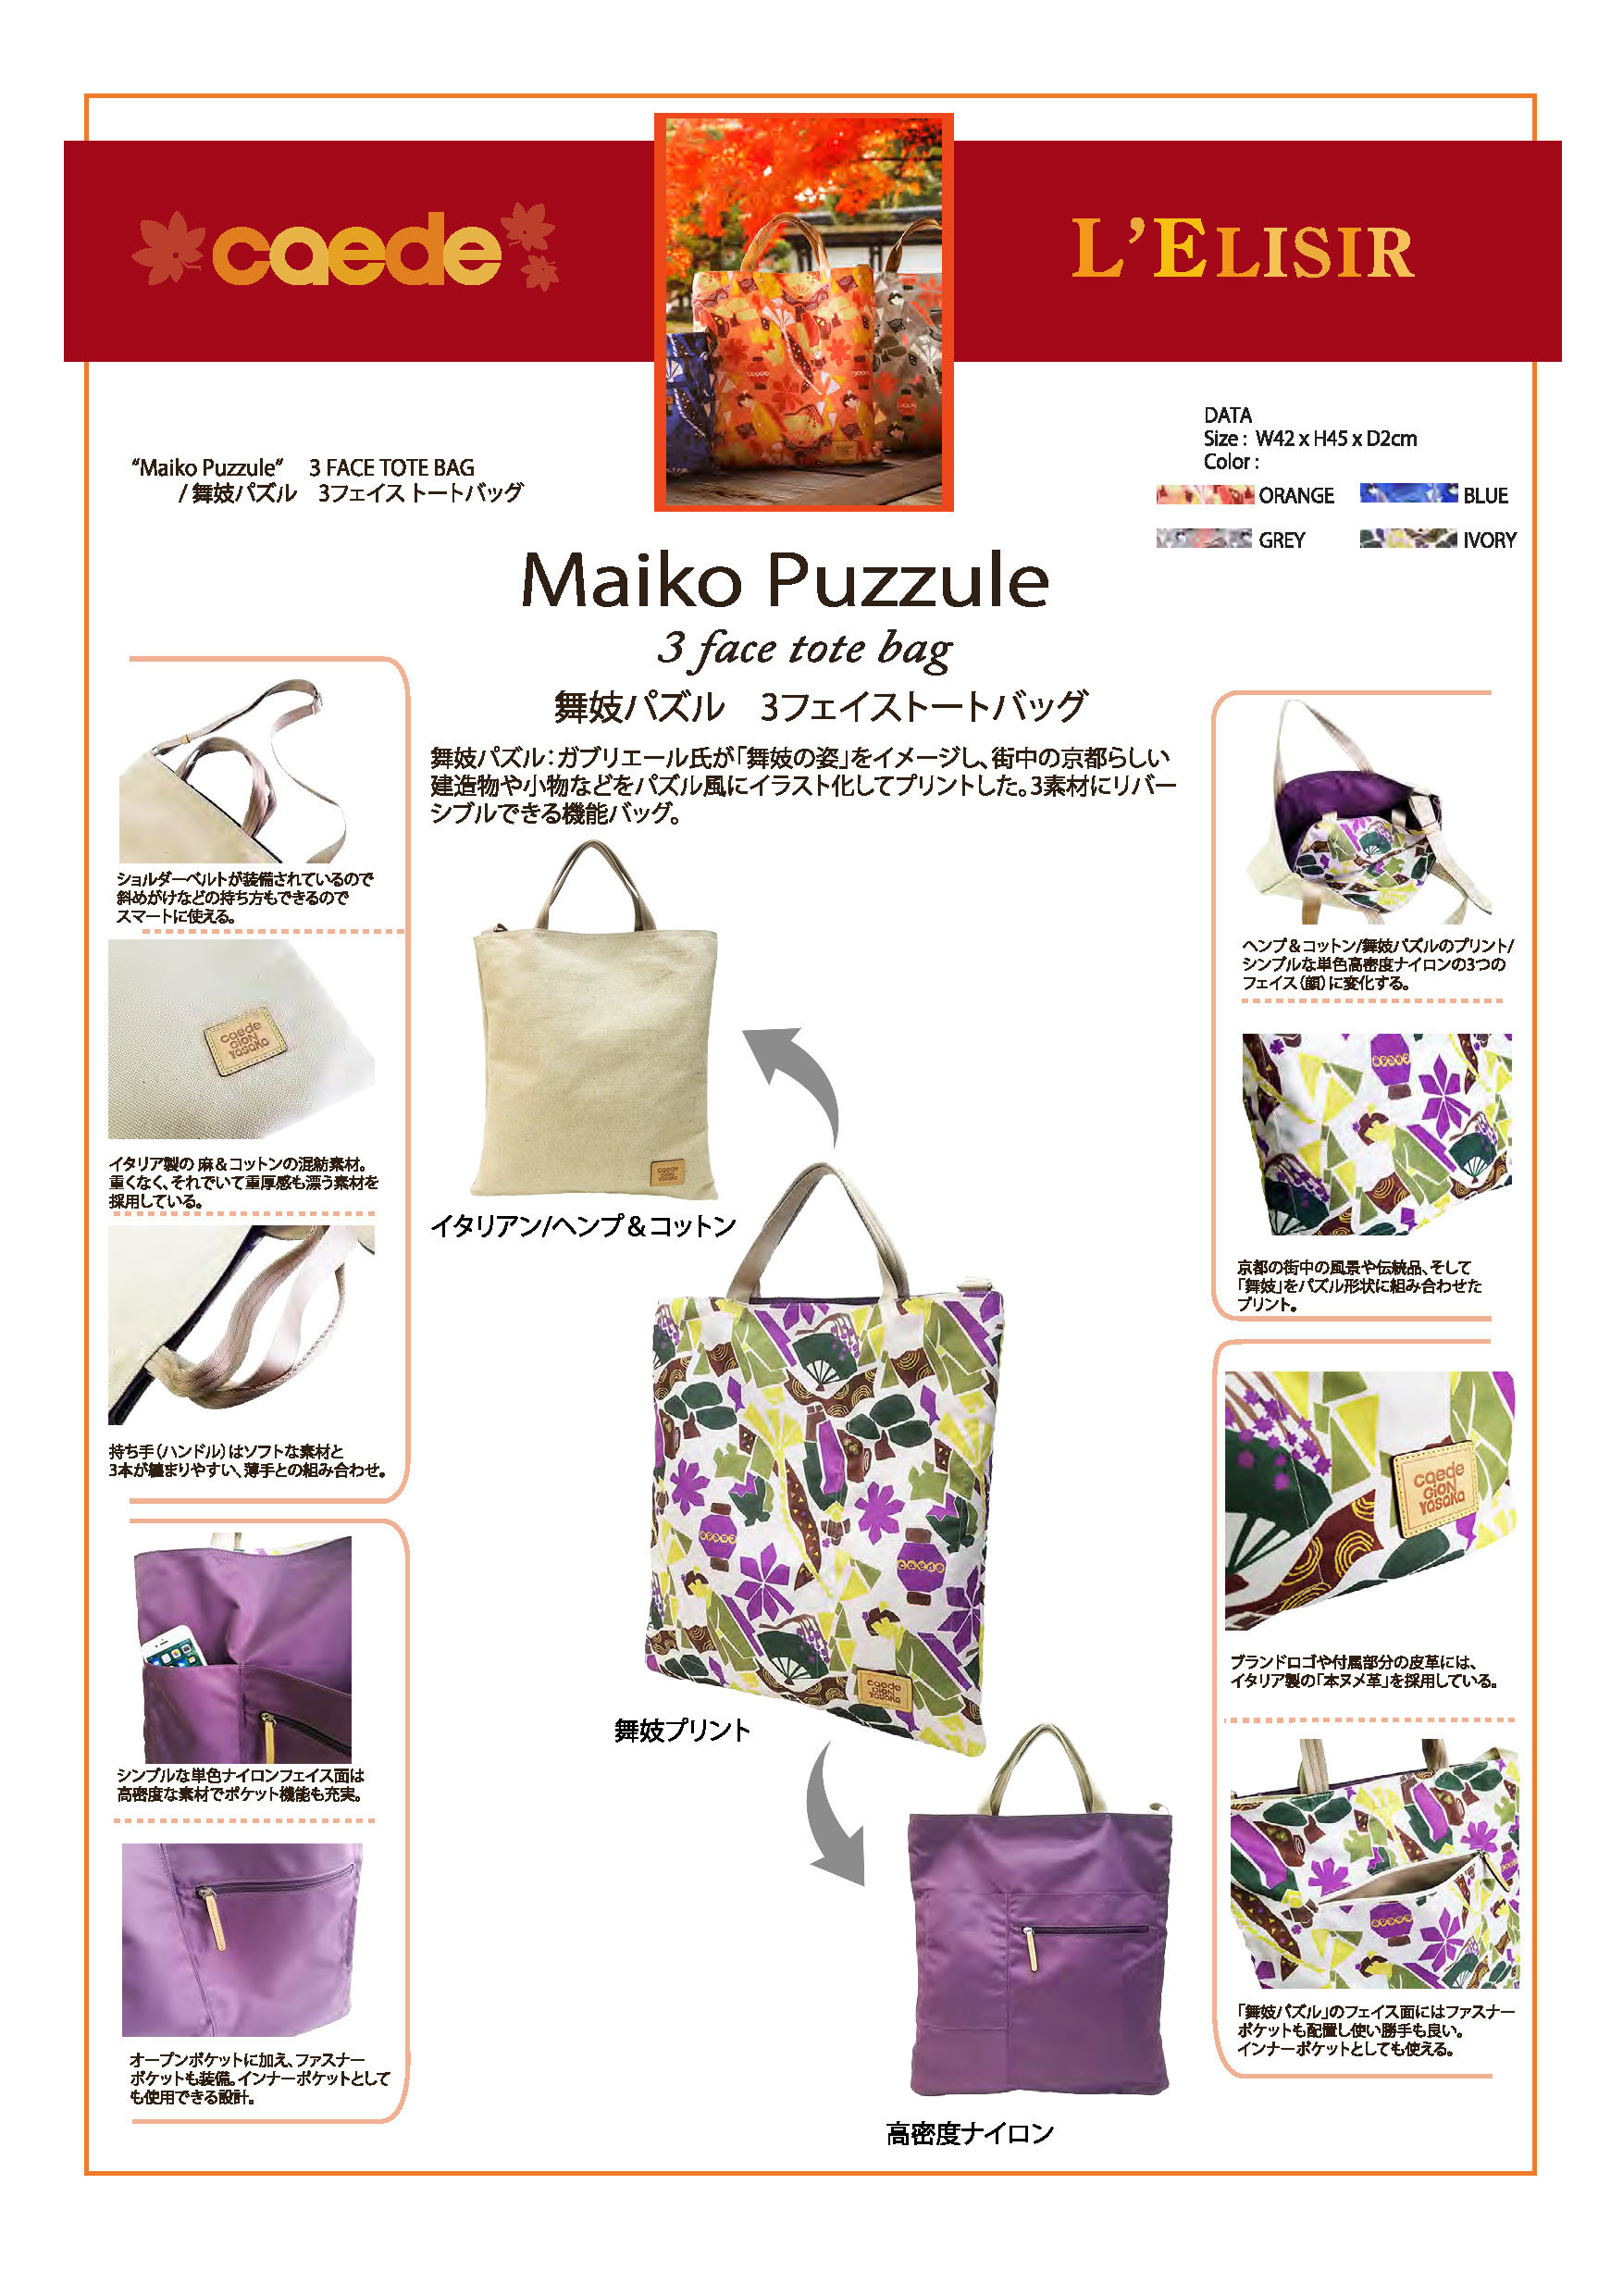 72661-maiko-puzzule 3face tote機能説明